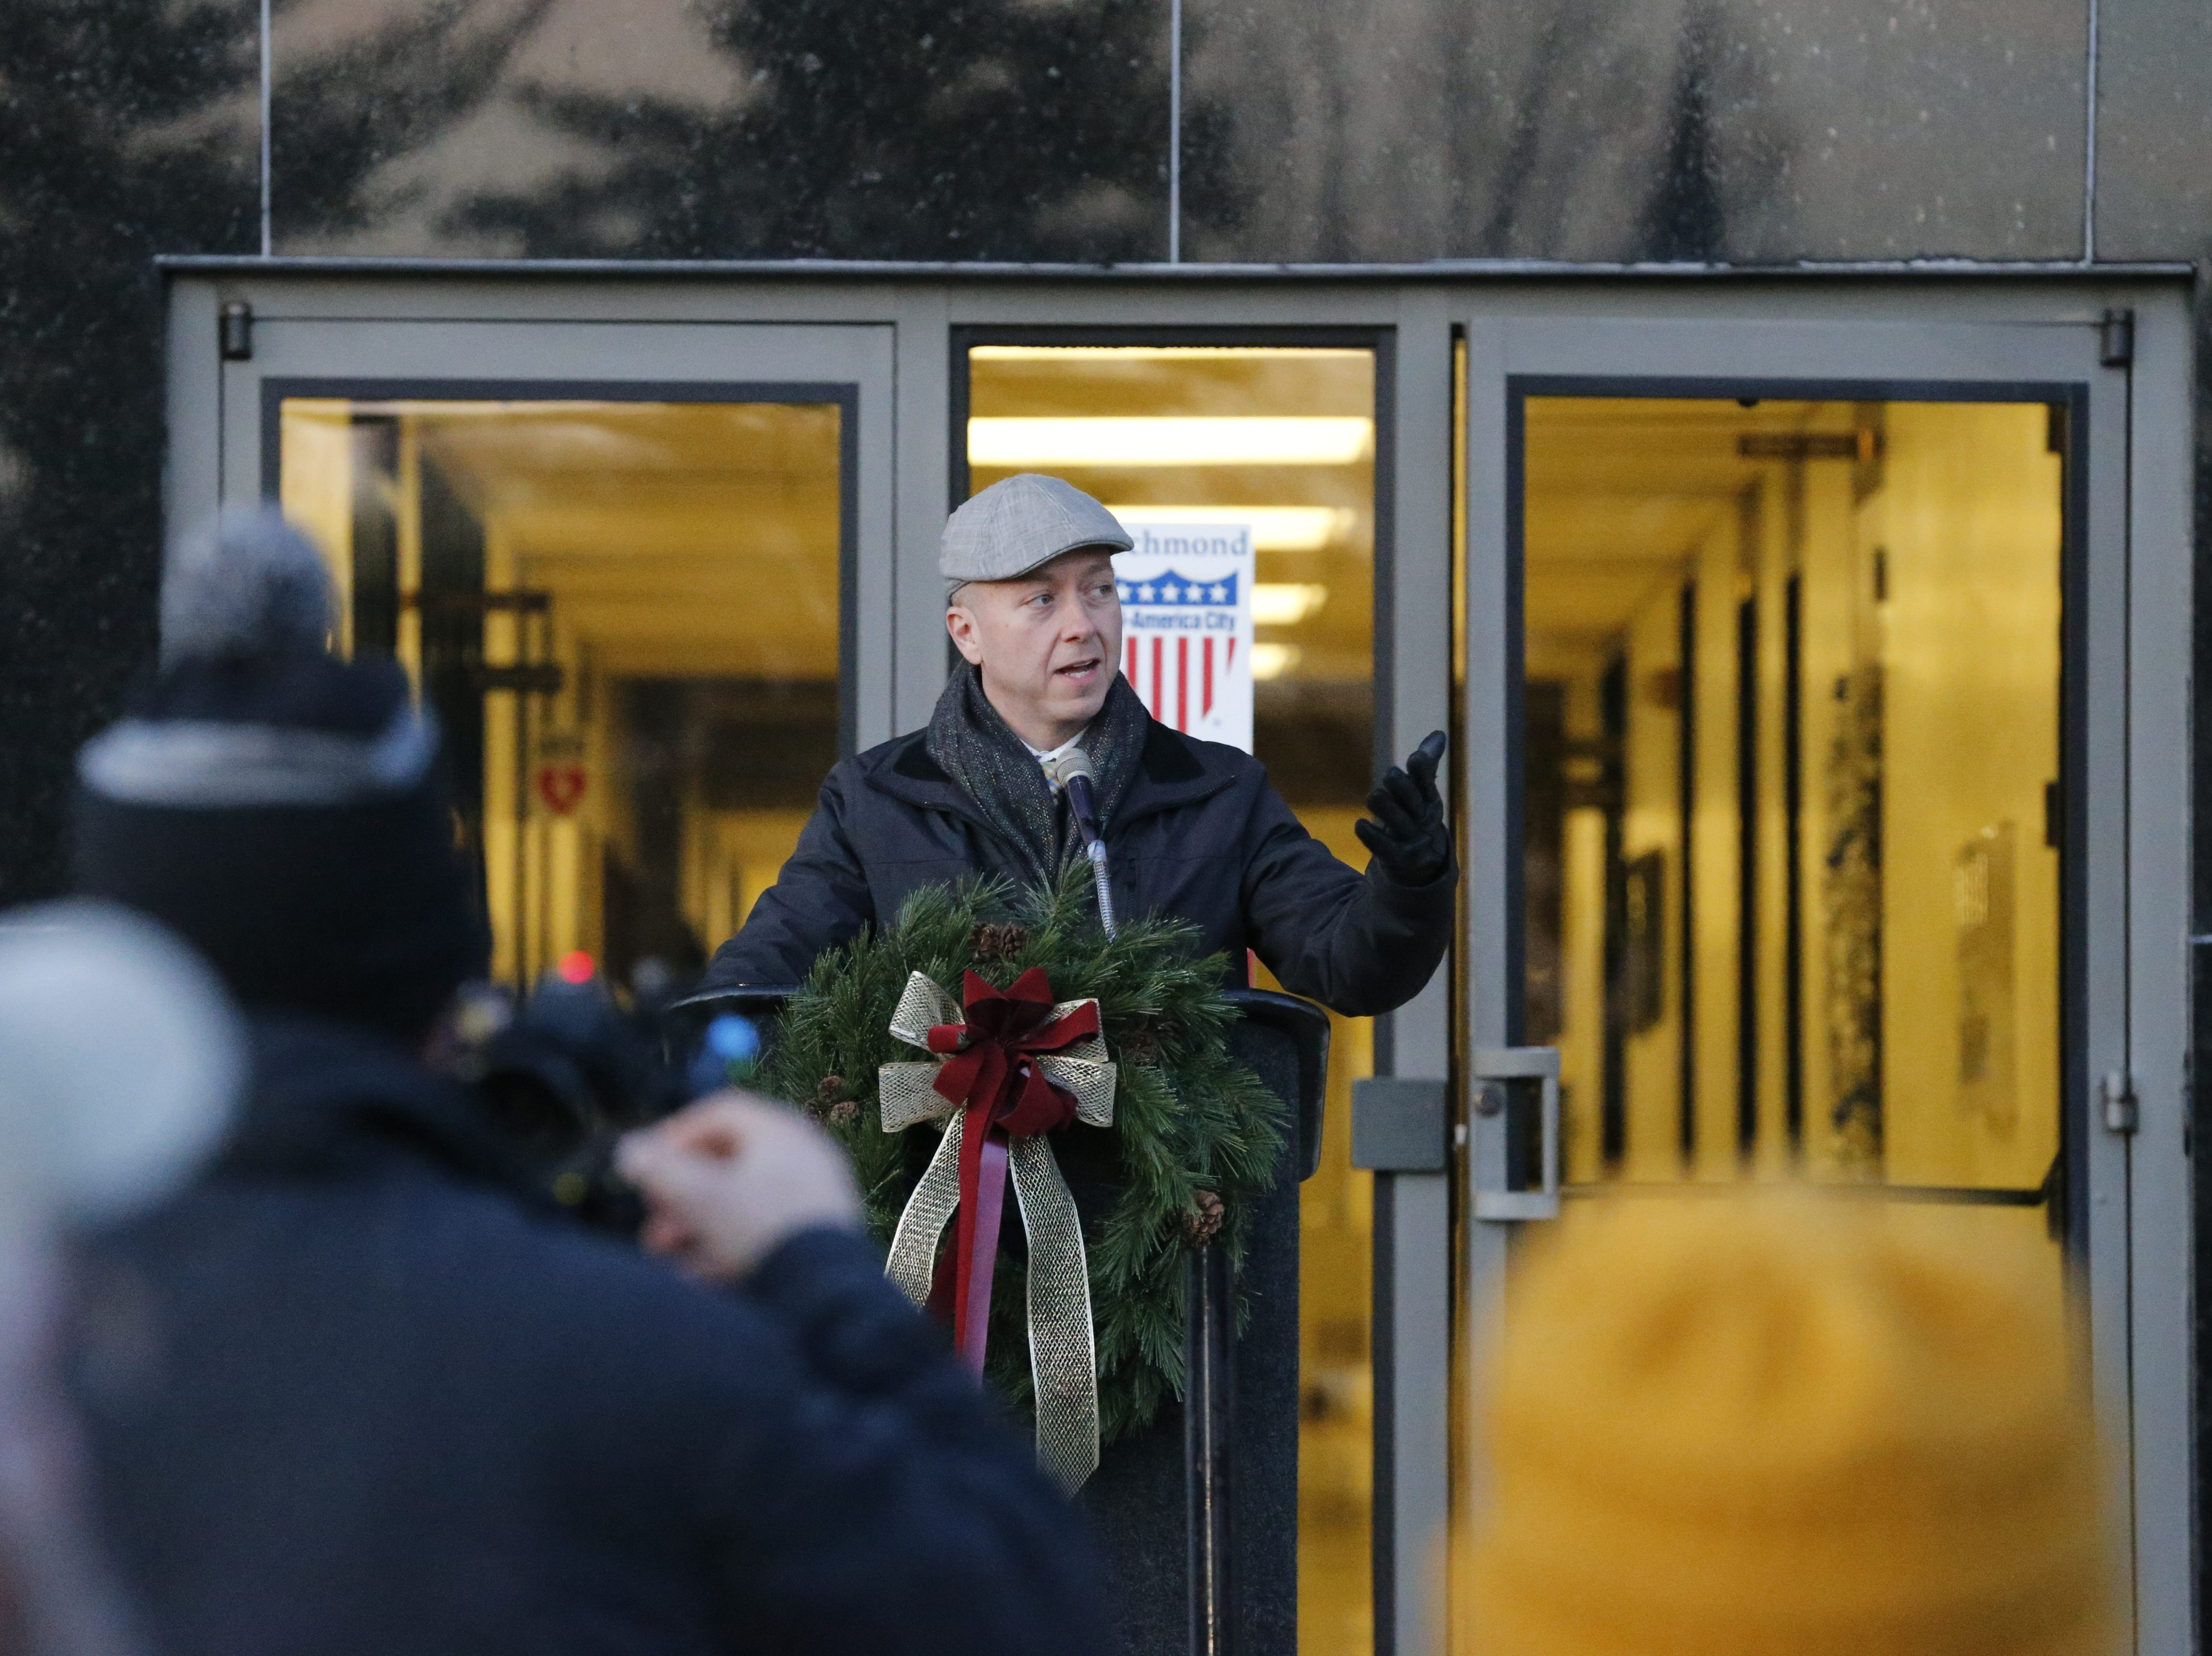 Mayor Dave Snow speaks outside the Richmond Municipal Building before the lighting of the holiday tree on Friday, Dec. 7, 2018.